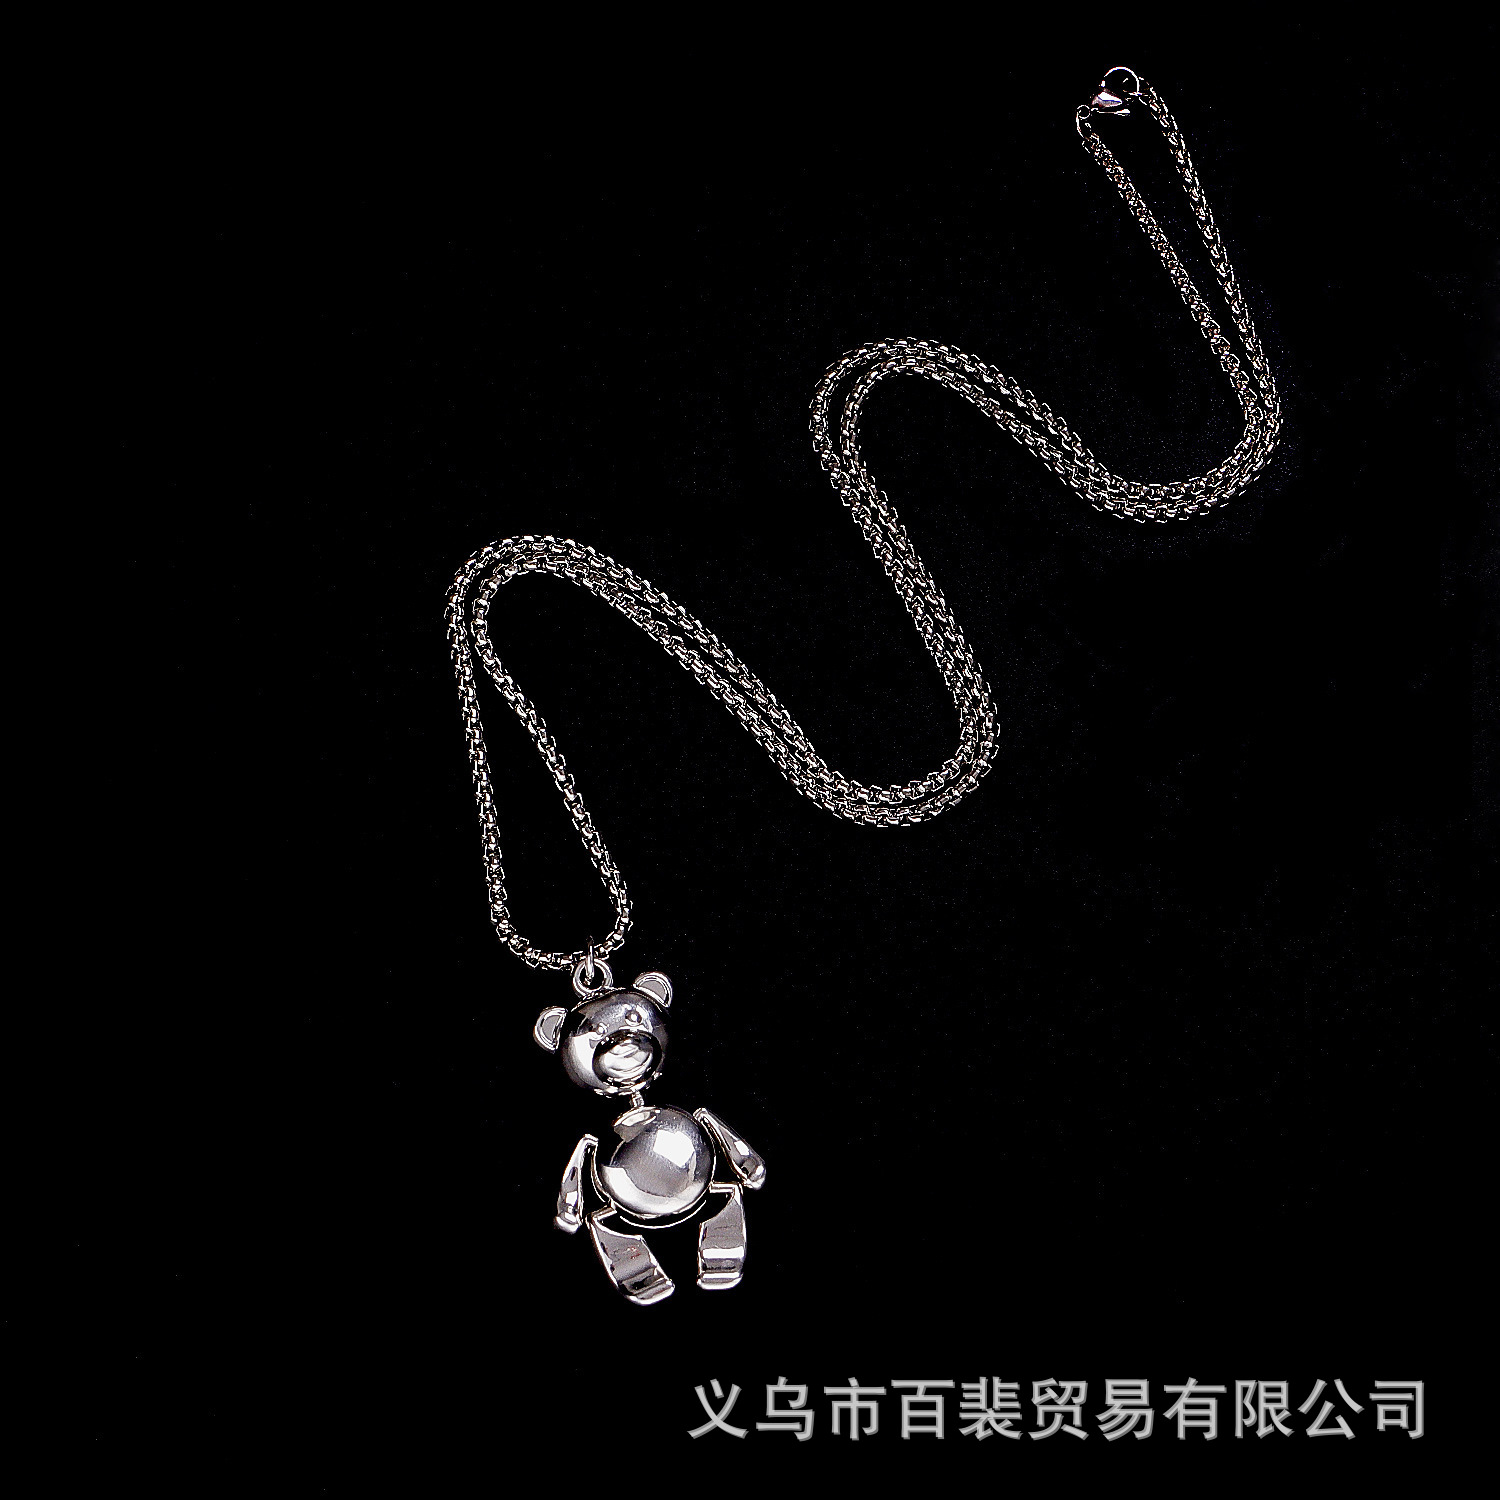 Adorable Teddy Bear Pendant Chain Necklace for Stylish Teenagers